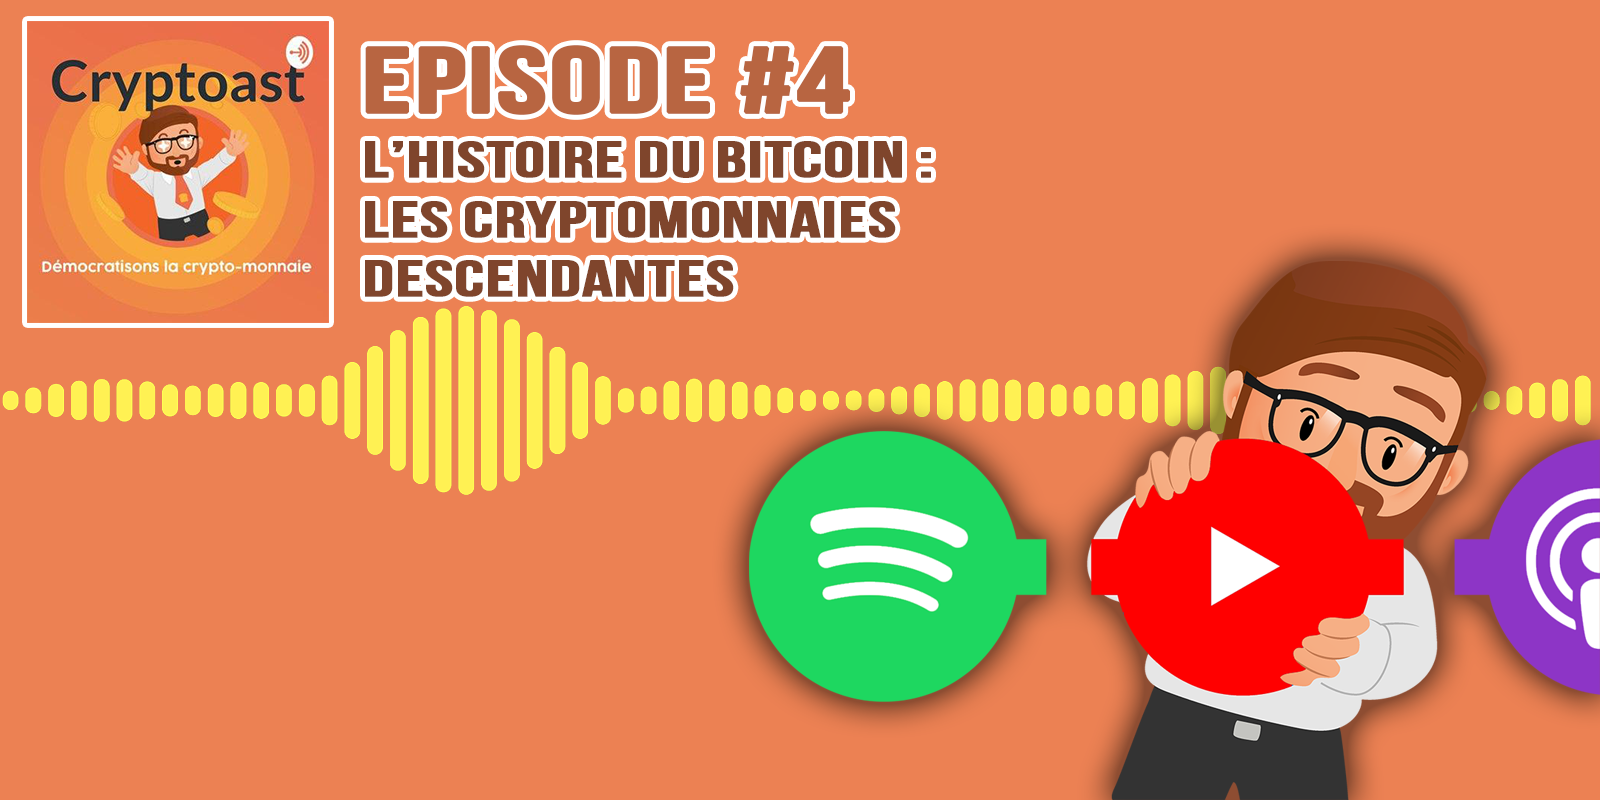 Podcast #4 - Les cryptomonnaies descendantes du Bitcoin